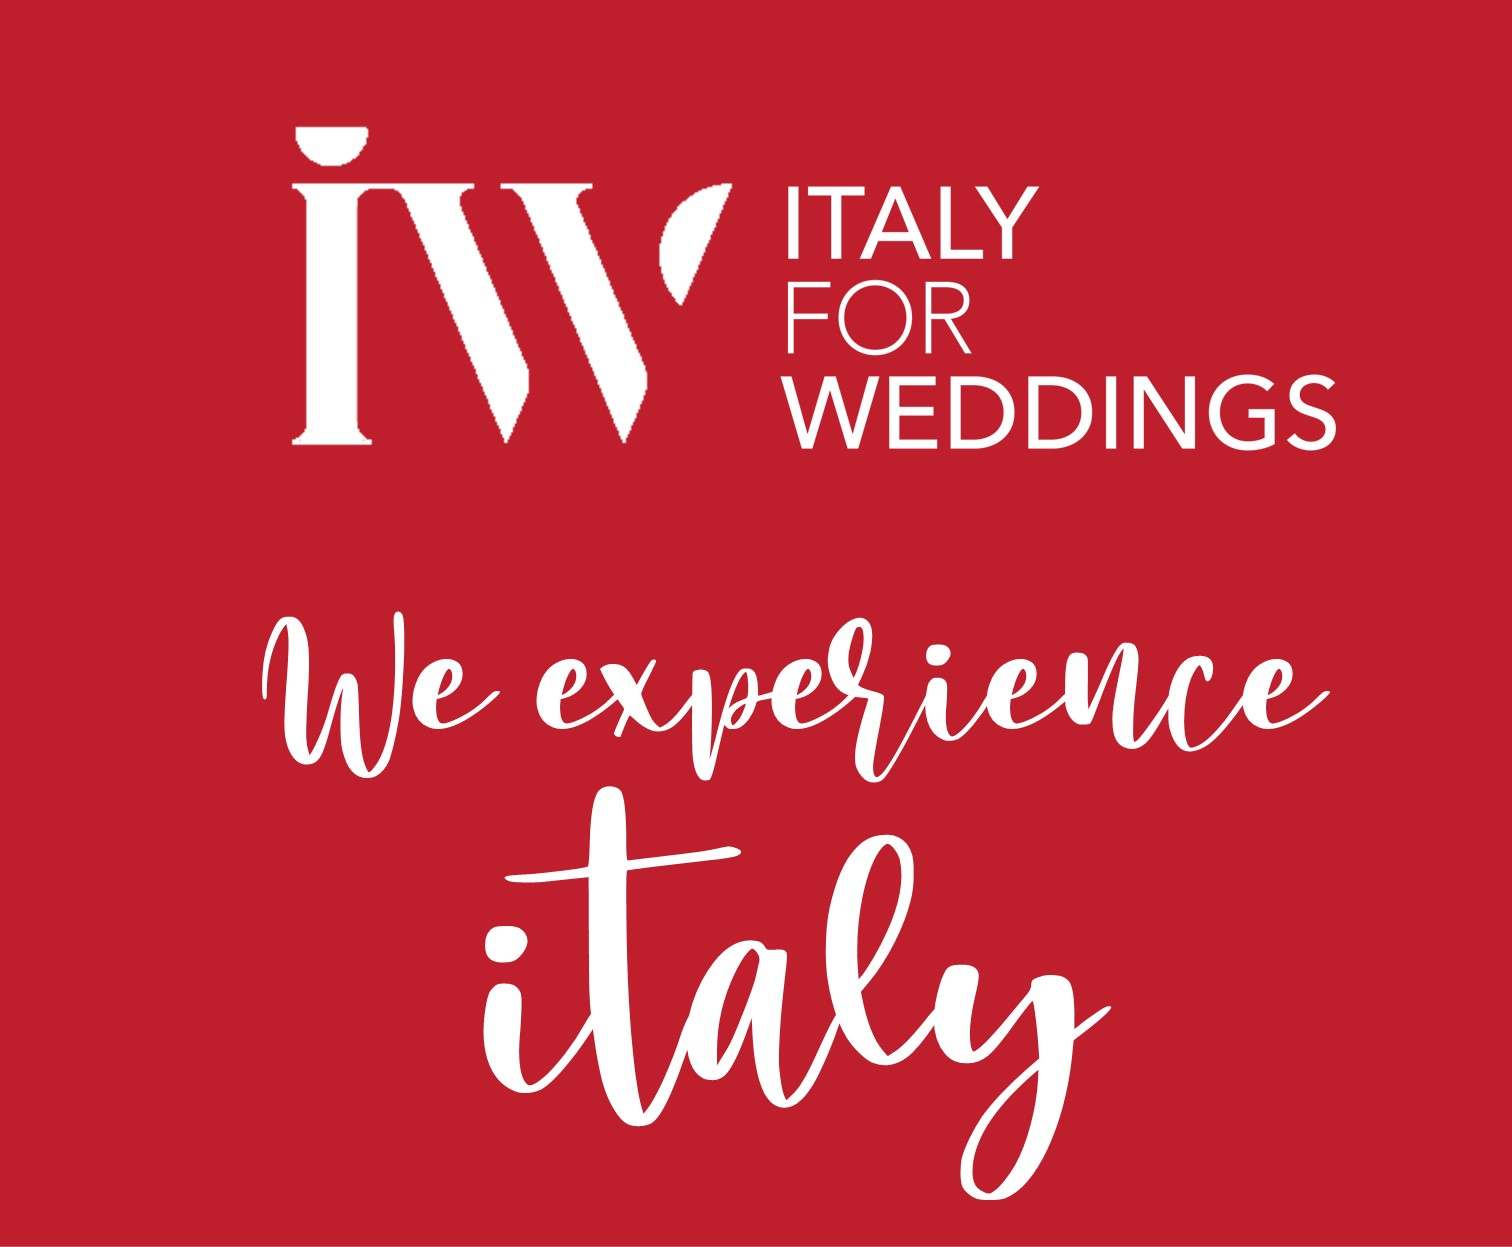 Italy for Weddings